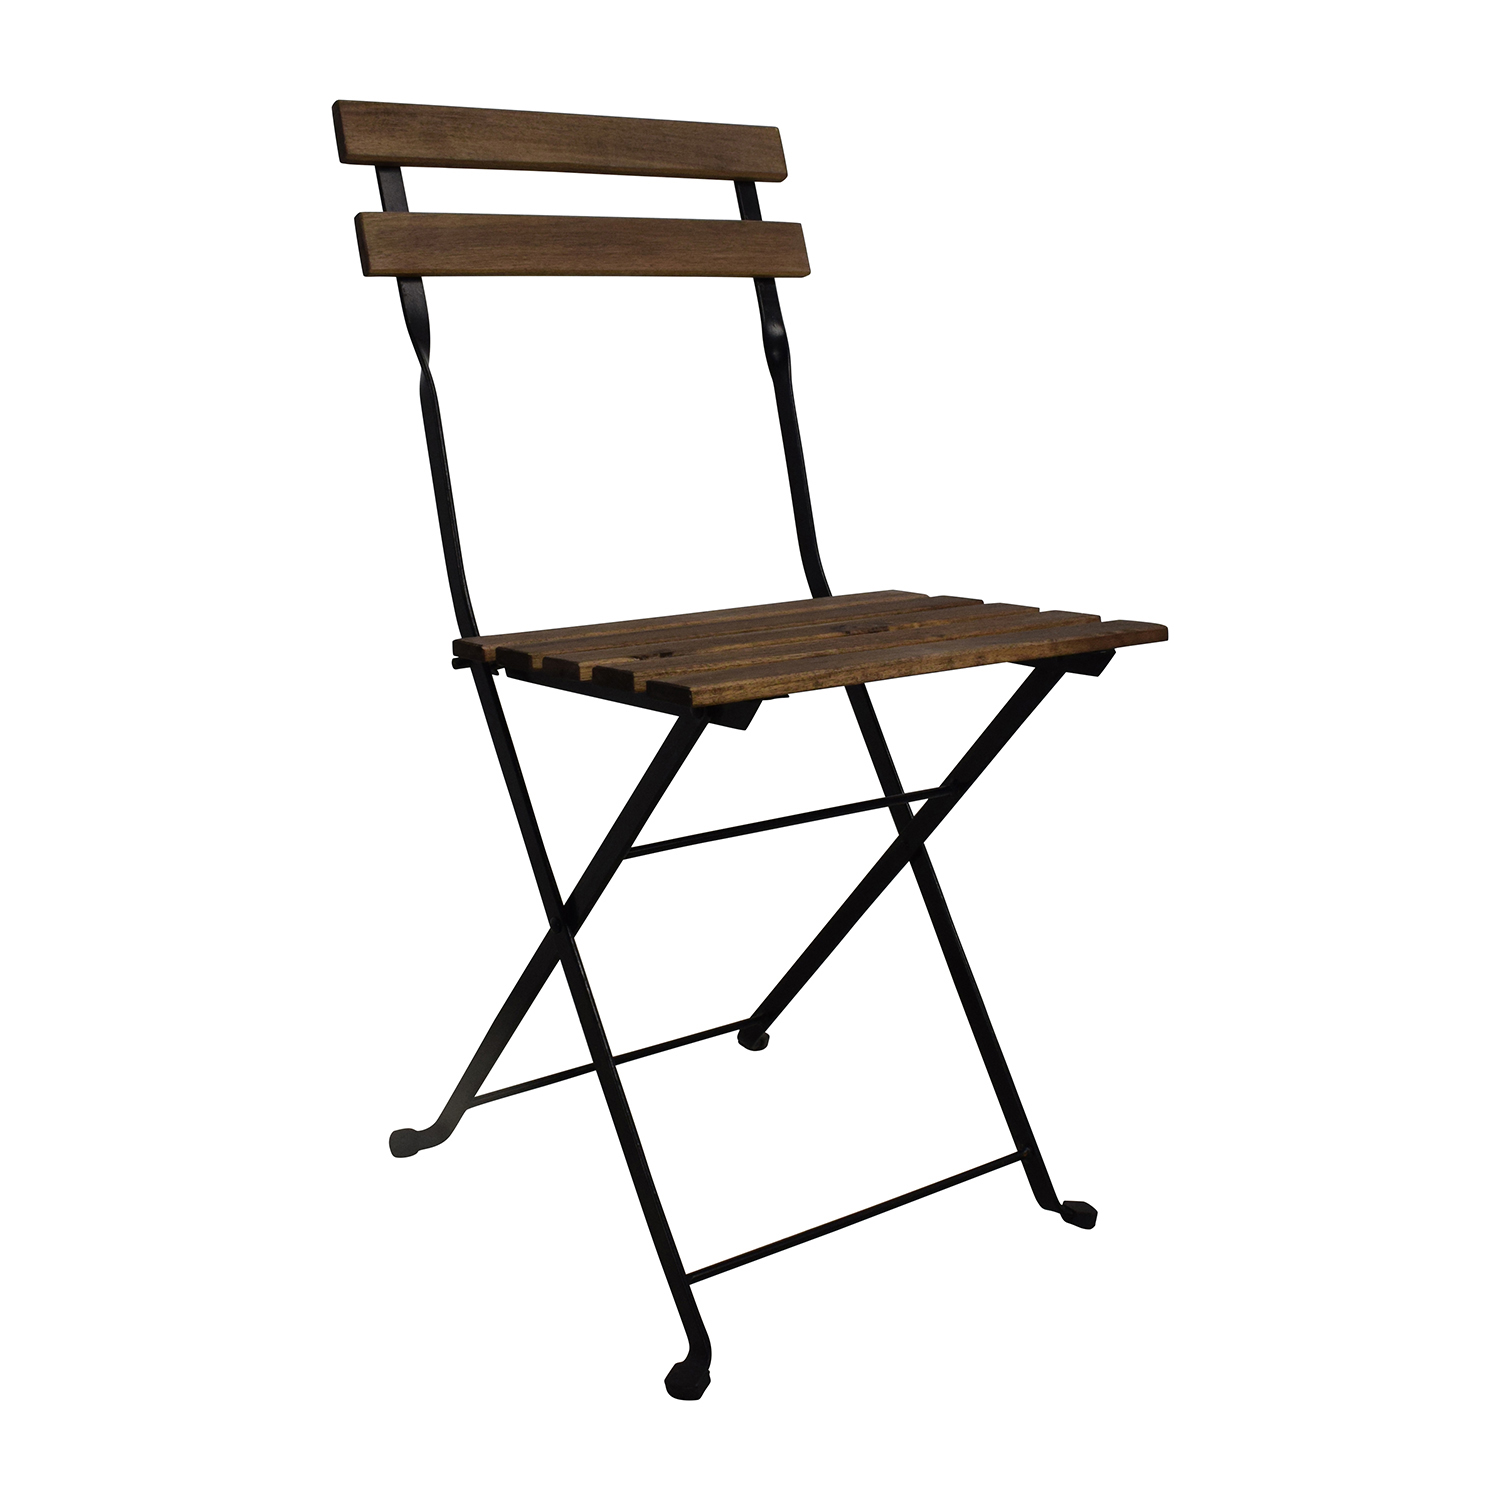 46% OFF IKEA IKEA Tarno Folding Table and Two Folding Chairs